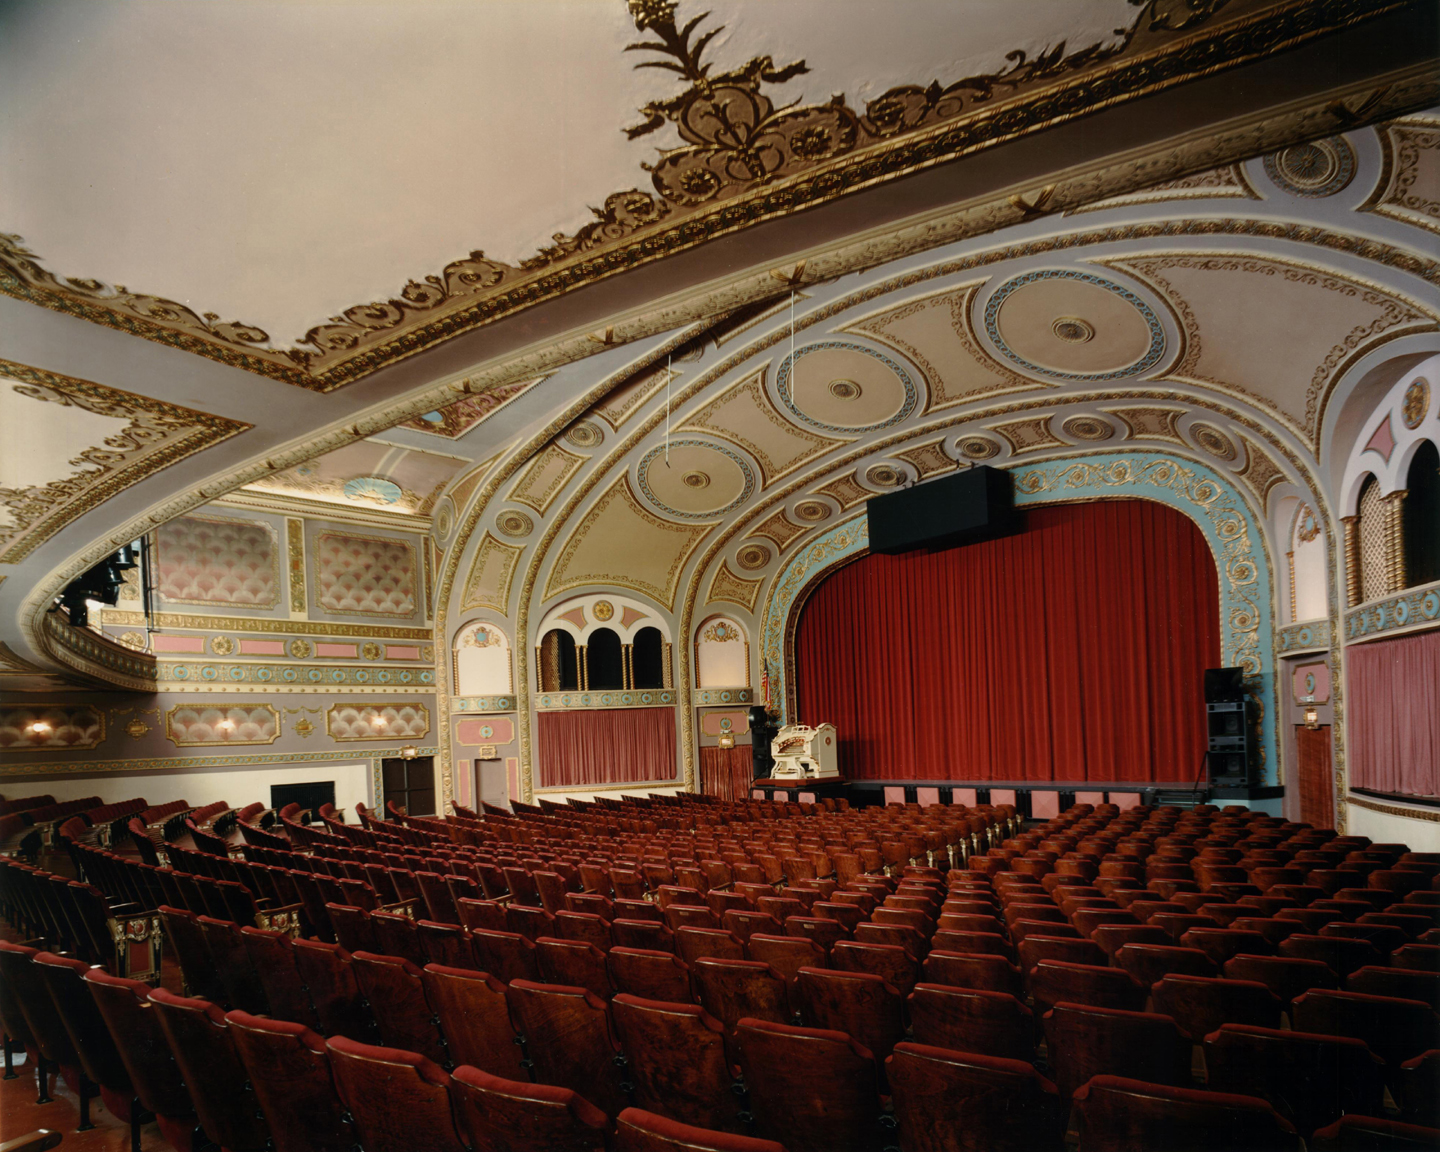 Meeting Spotlight: Renaissance Theatre (Renaissance Performing Arts Association)